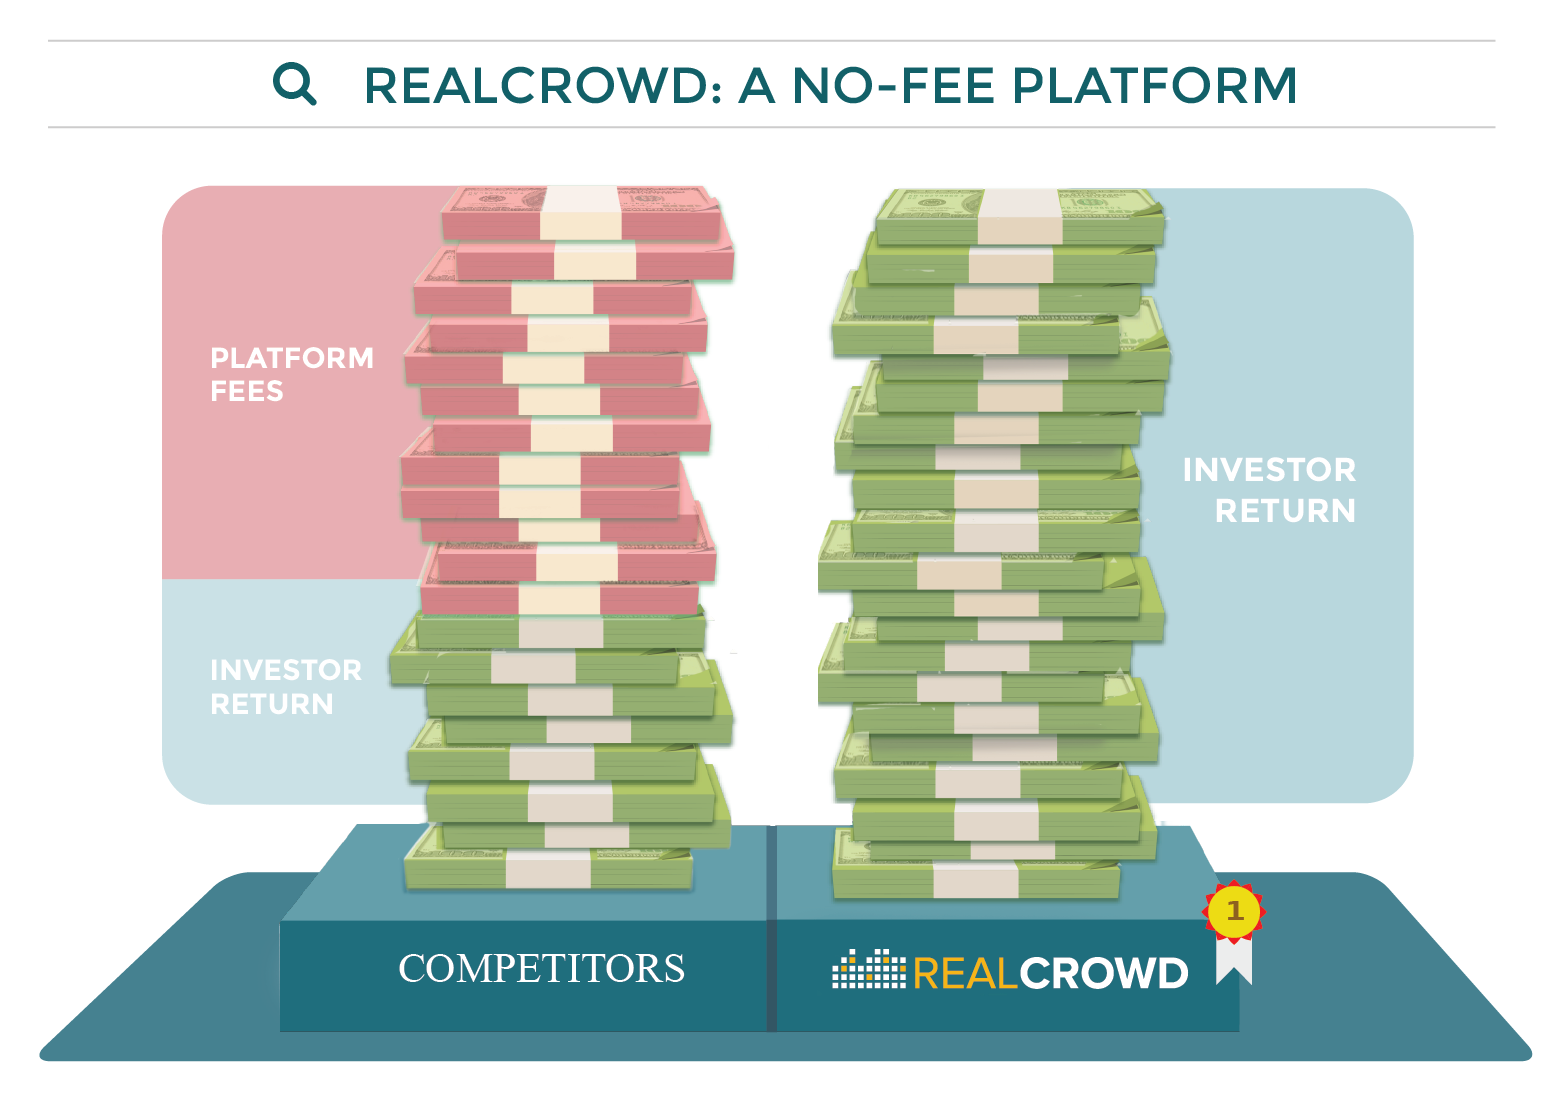 How RealCrowd Stays Fee Free for Investors